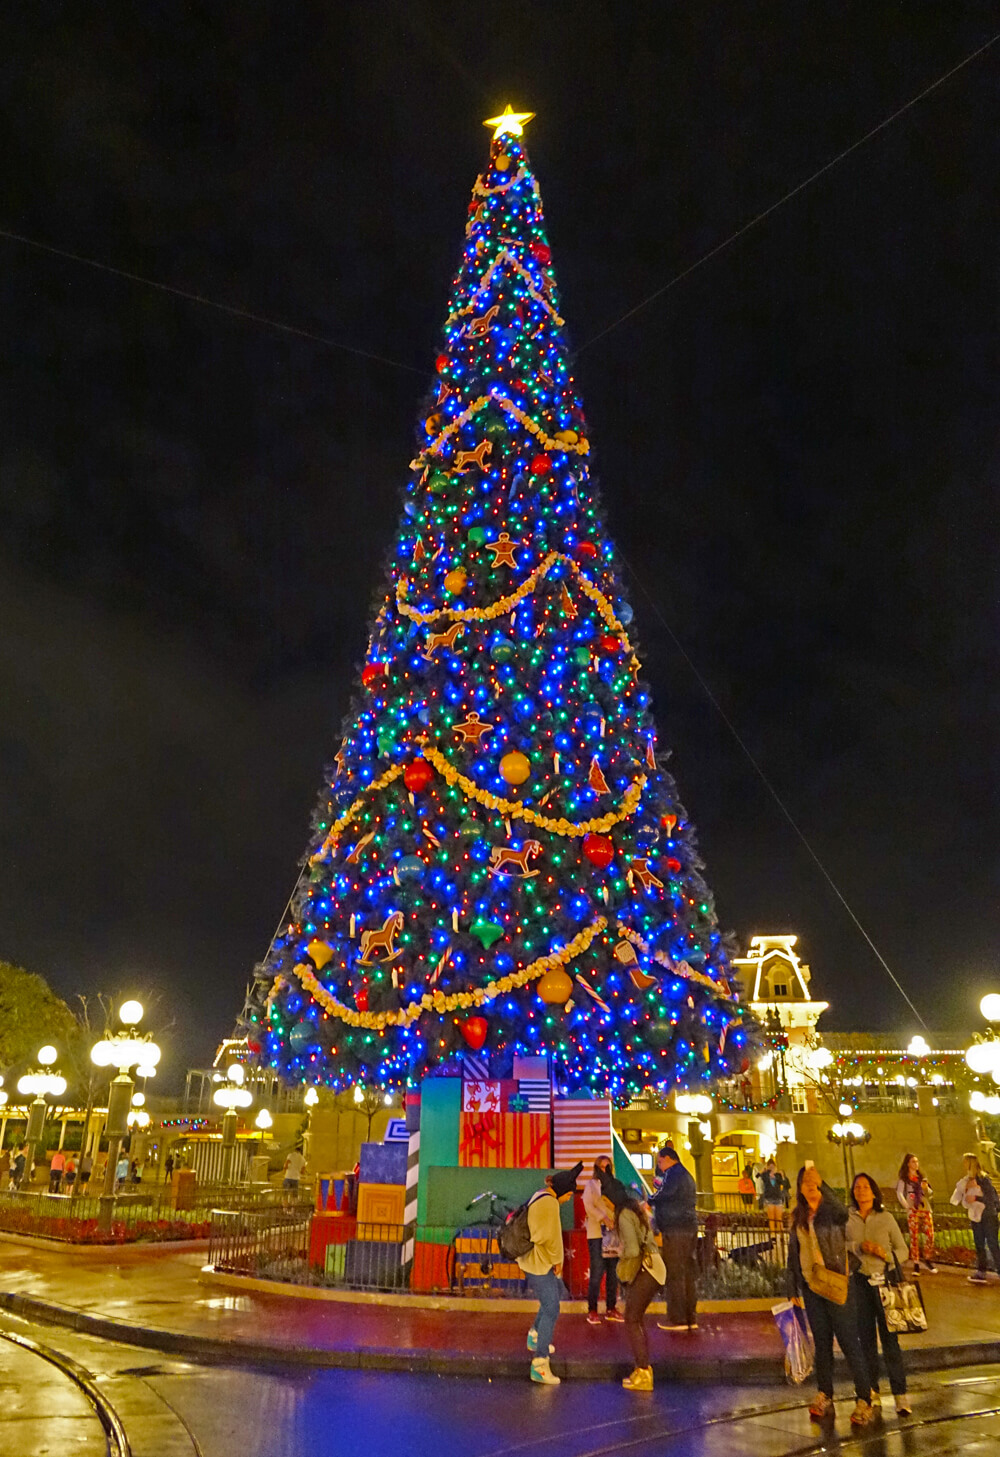 disney world holiday events 2018 magic kingdom tree decorating is - When Does Disneyland Decorate For Christmas 2018